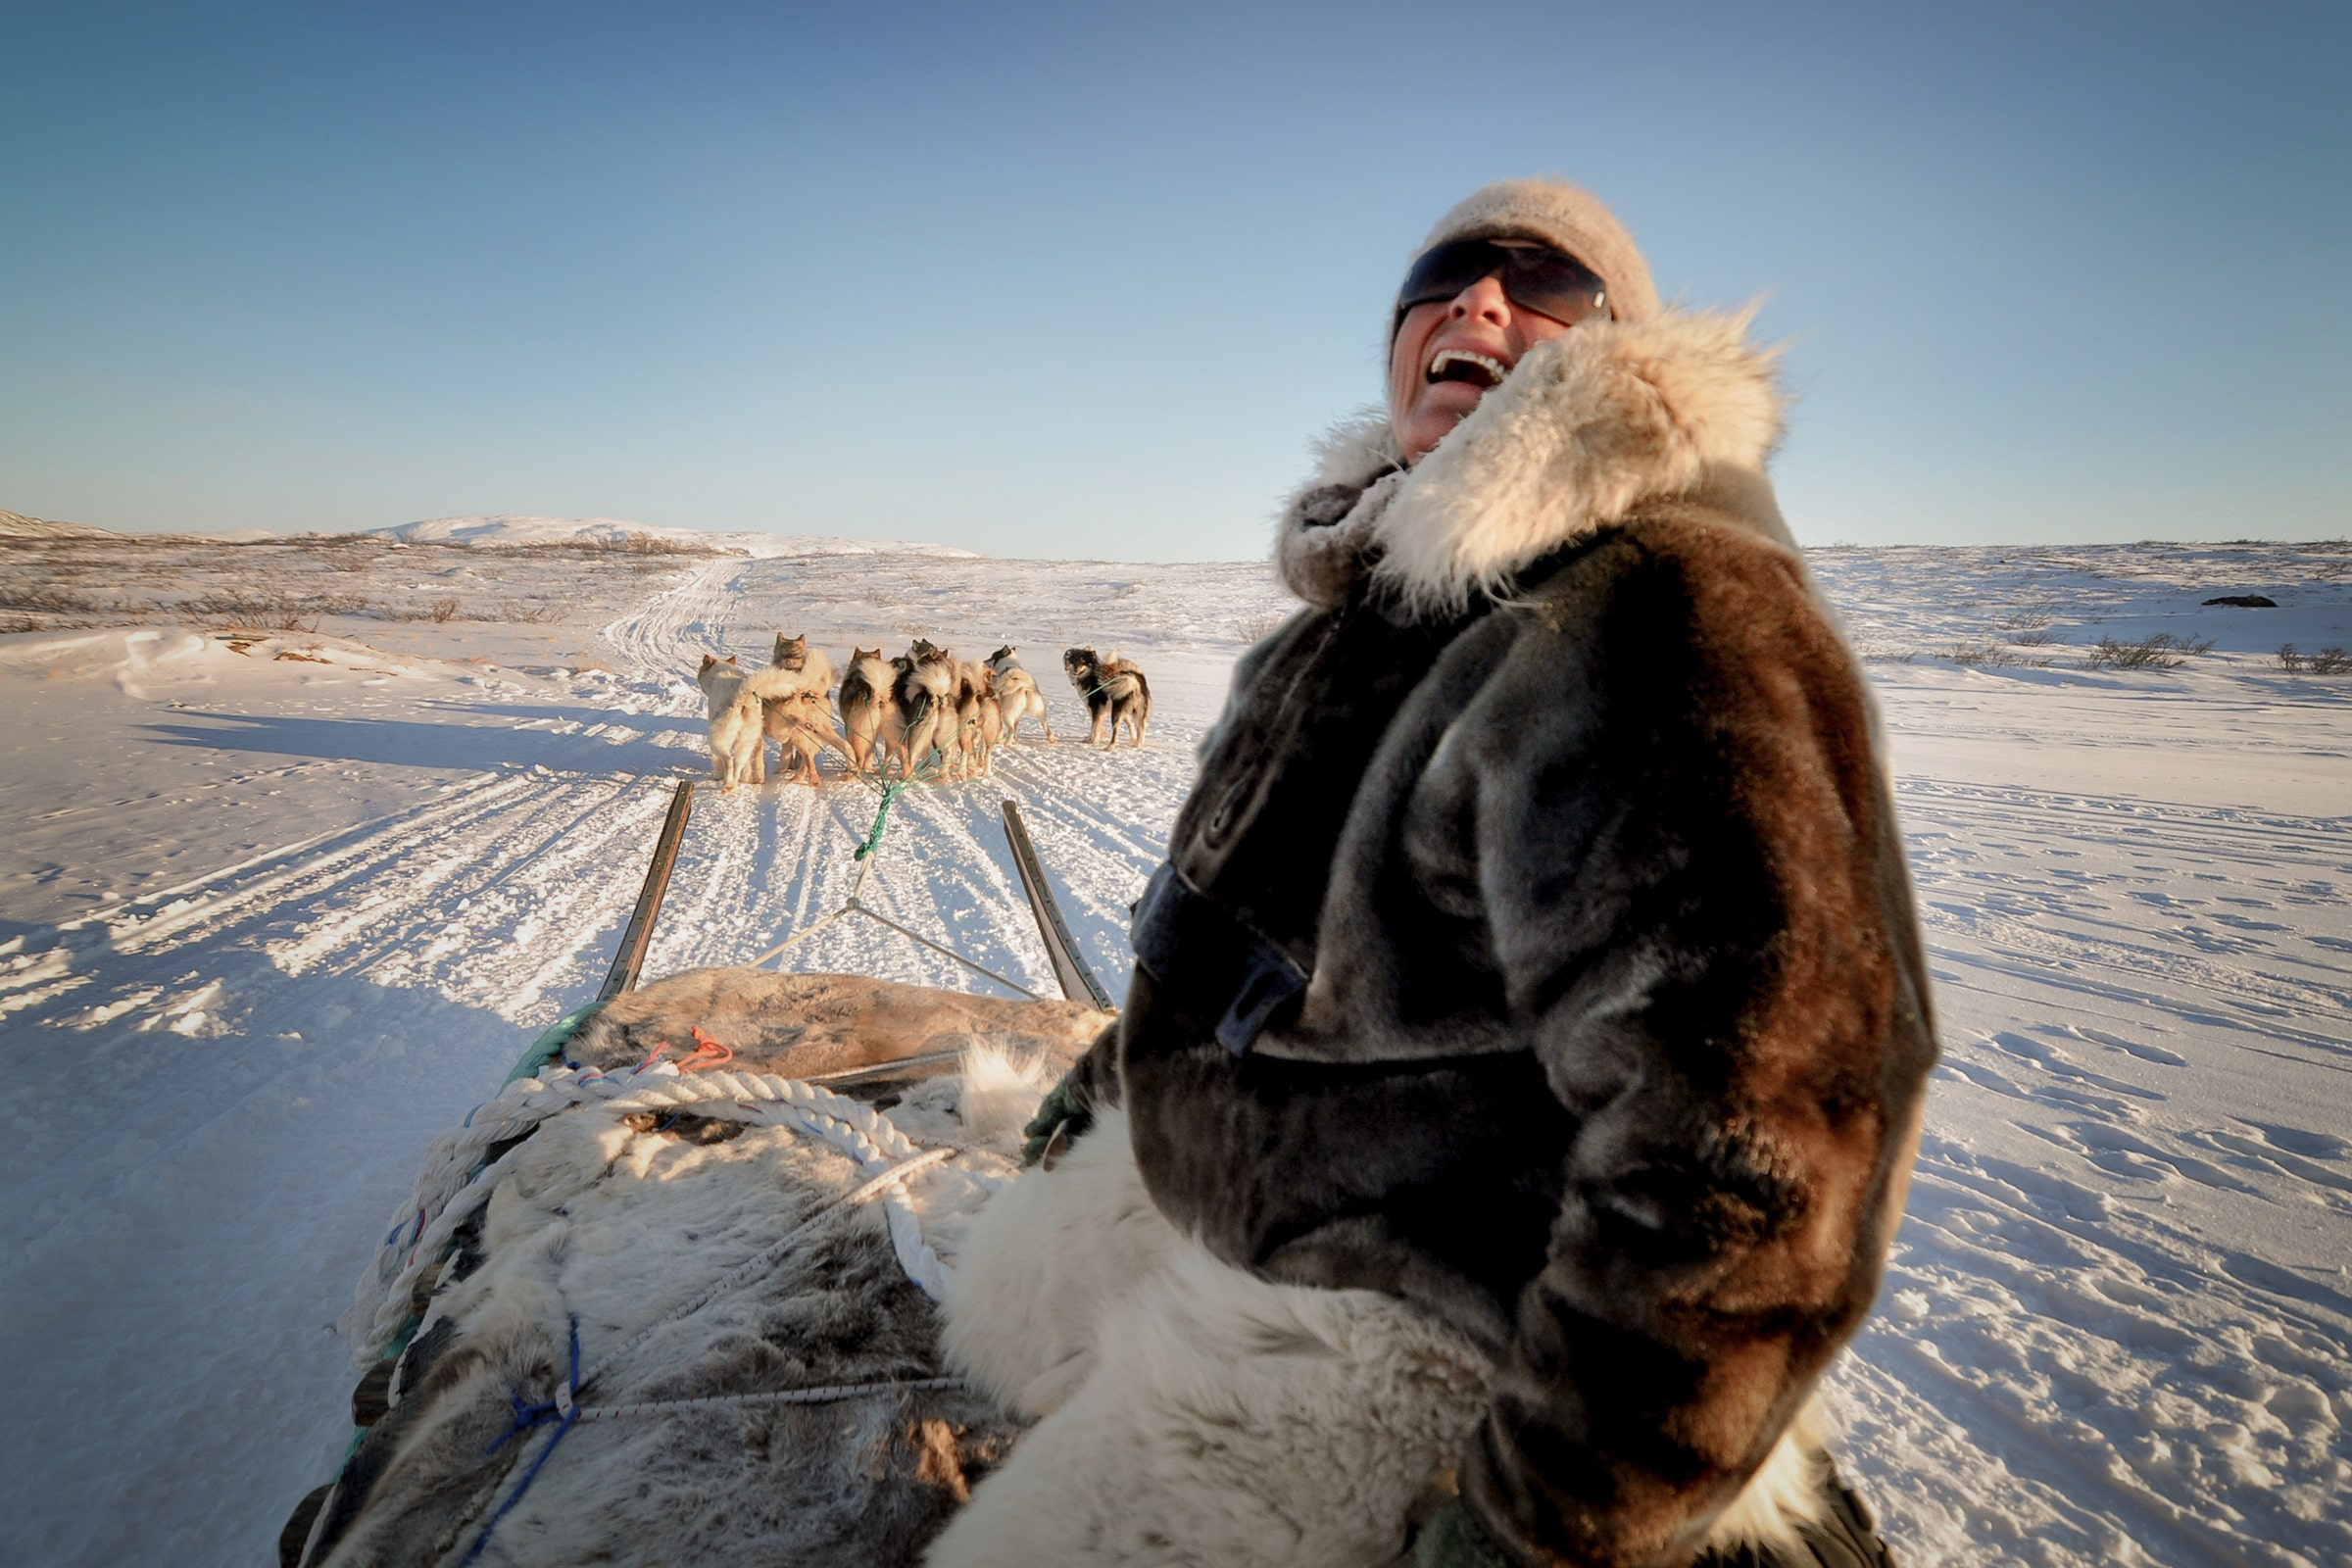 Dog sled driver and hunter Johanne Bech from Sisimiut on a dog sled trip near Kangerlussuaq in Greenland. Photo by Mads Pihl - Visit Greenland